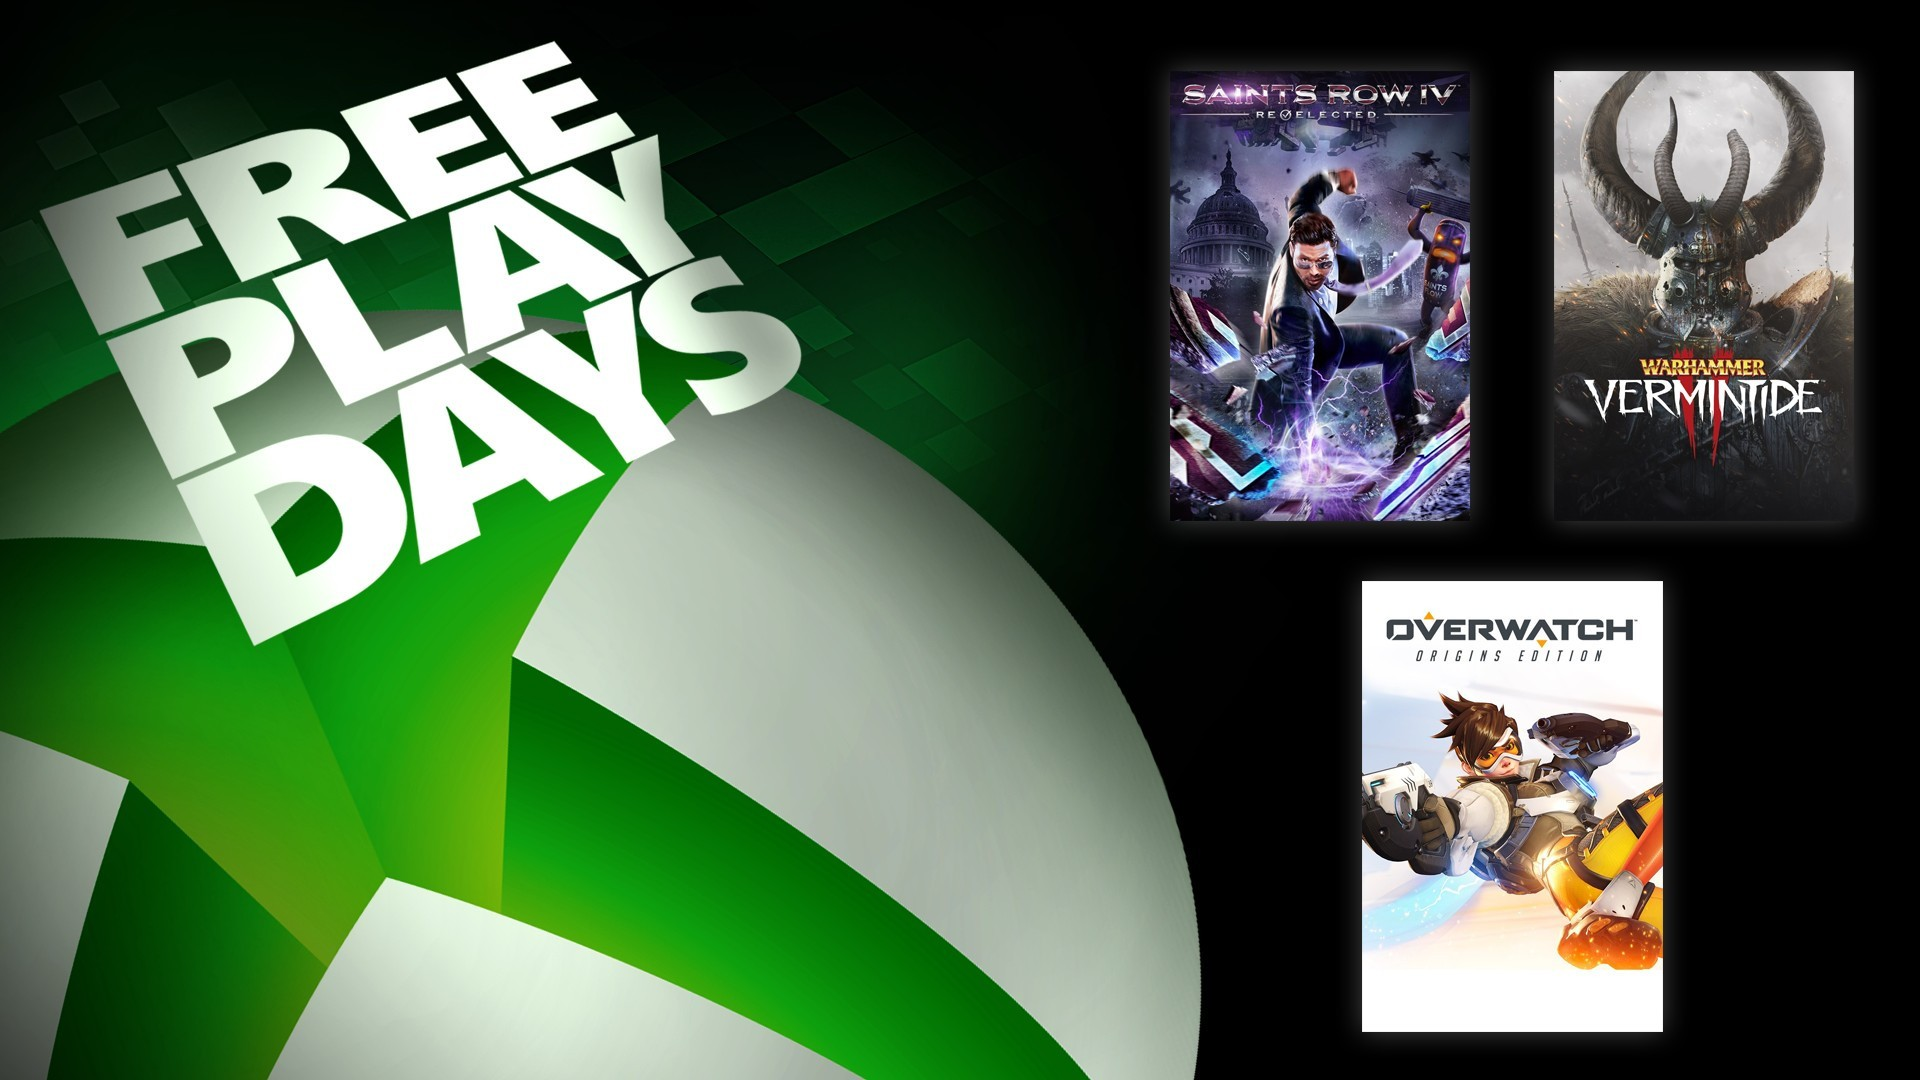 Free Play Days – Saints Row IV: Re-Elected, Overwatch Origins Edition, and Warhammer: Vermintide 2 1